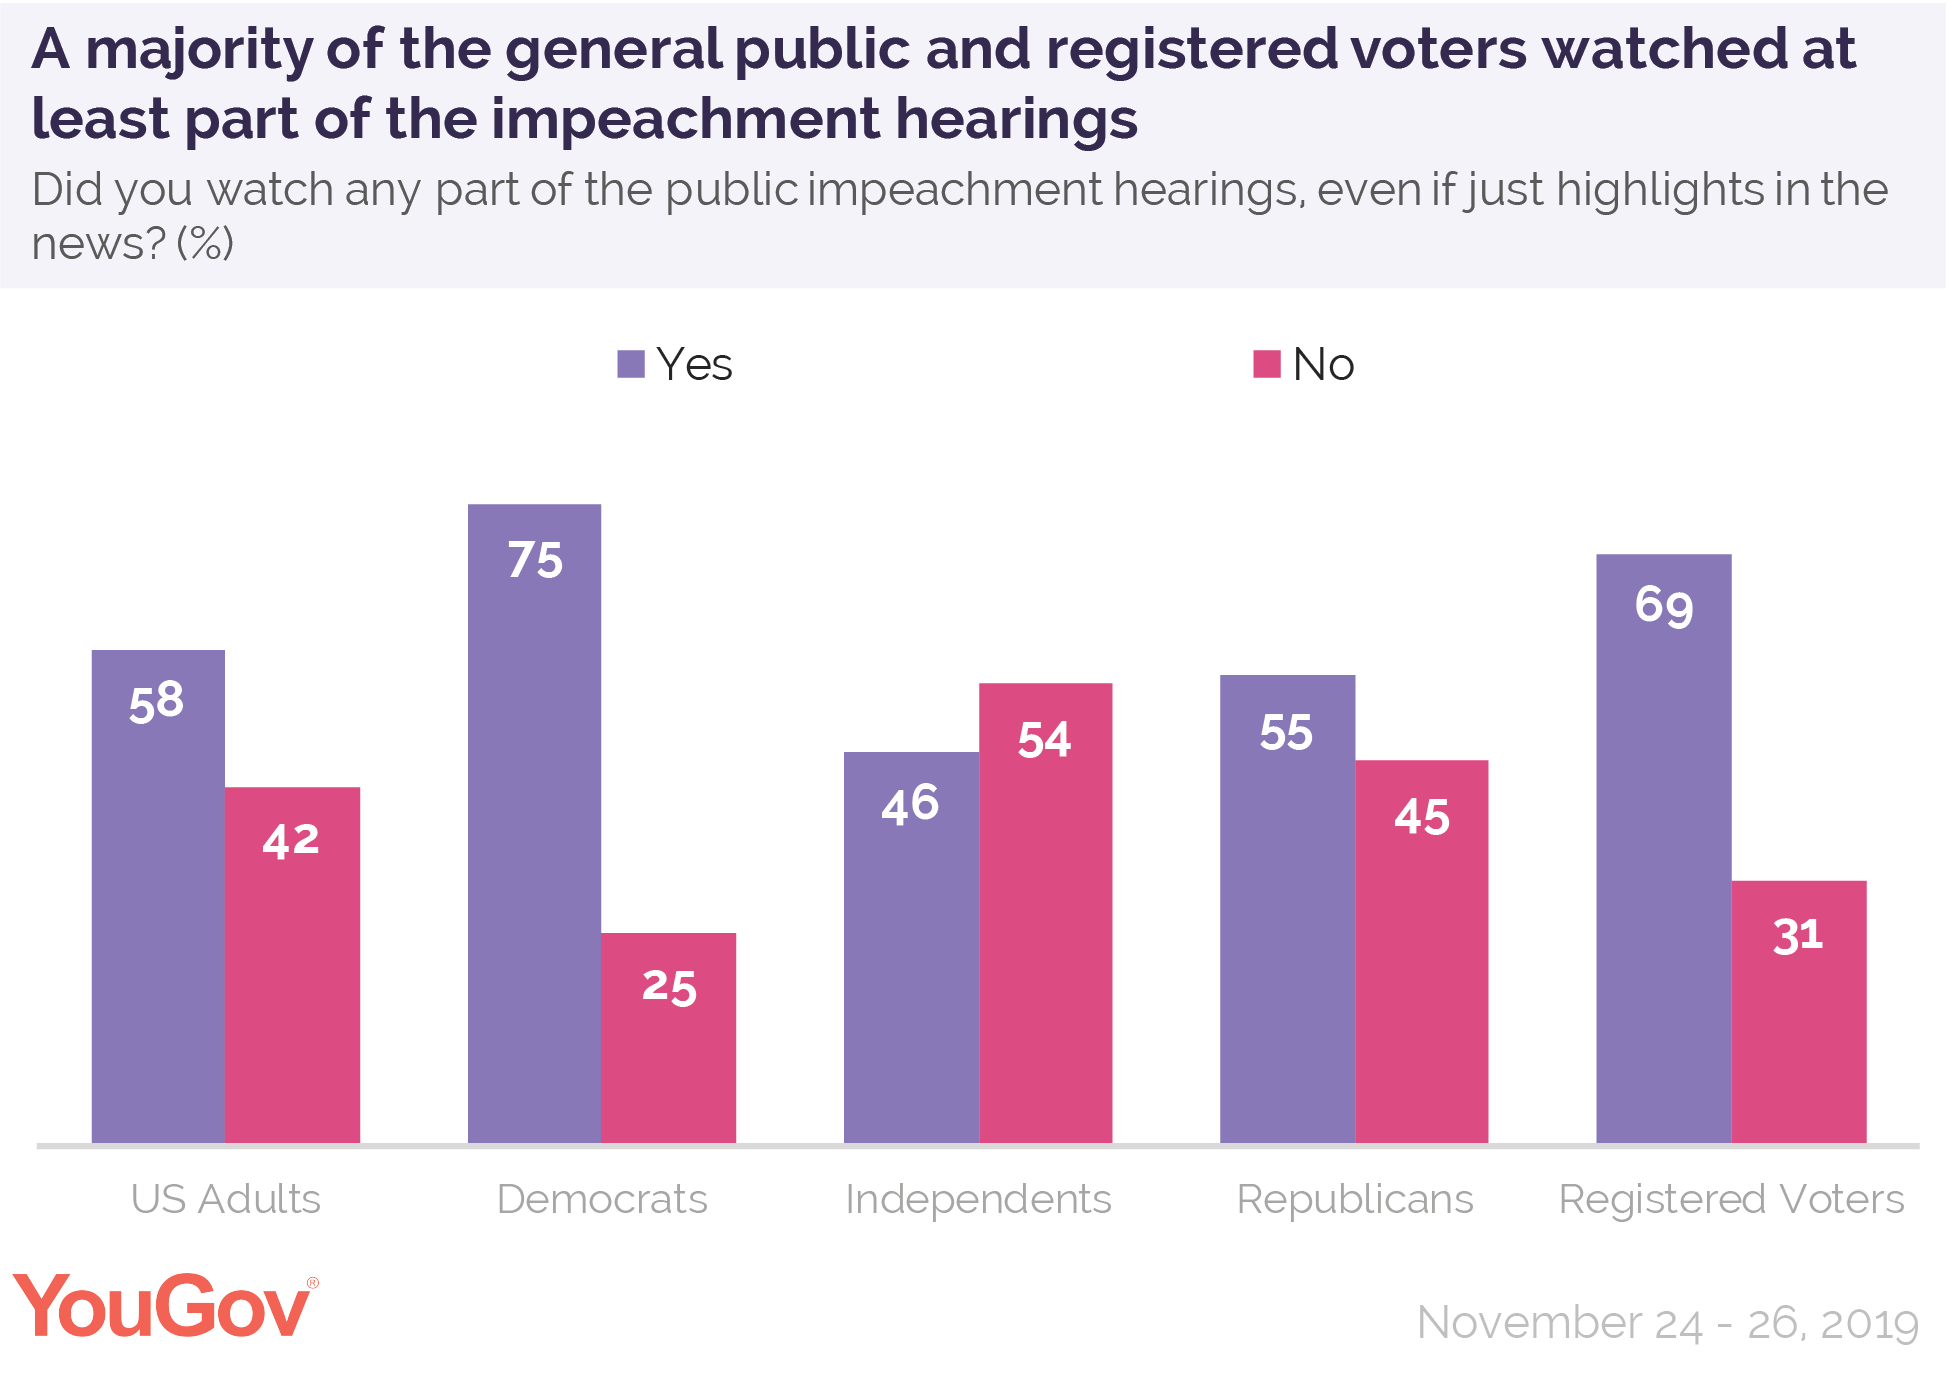 A majority of the general public and registered voters watched at least part of the impeachment hearings